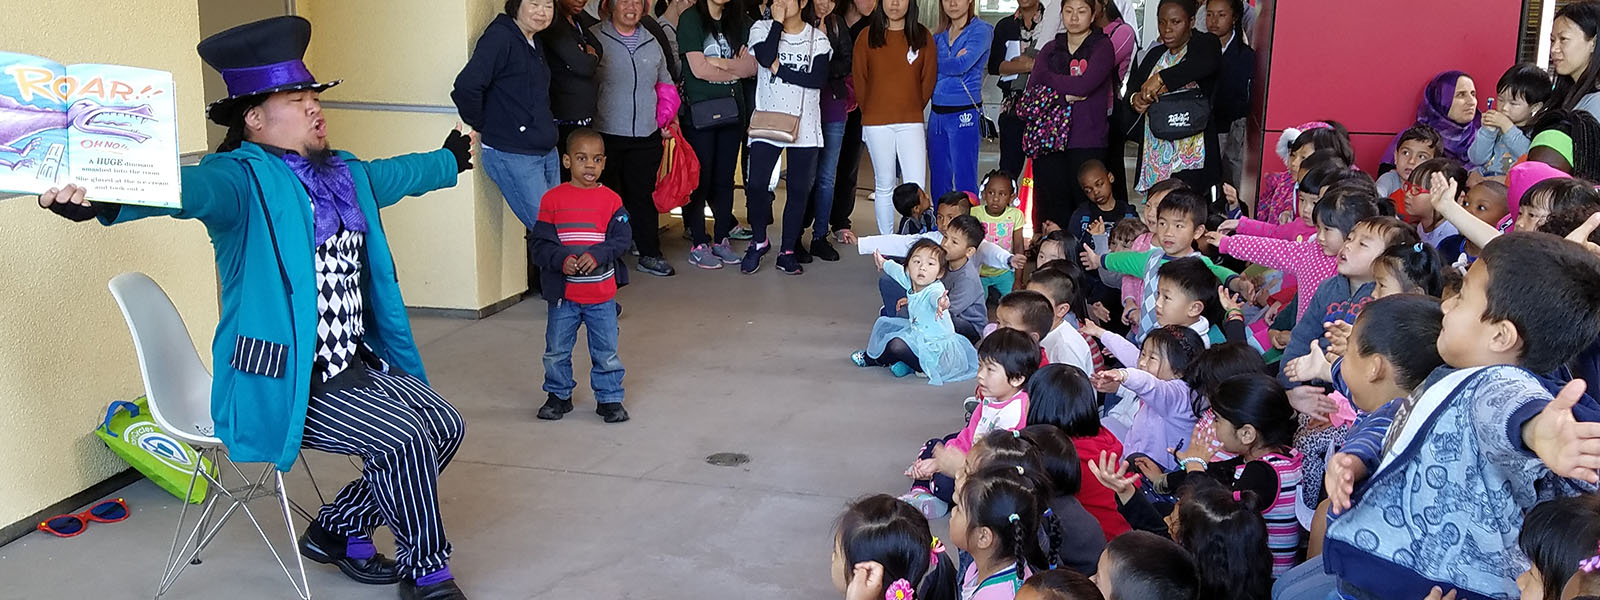 A man in a top hat and costume reads a book to a large group of children and parents